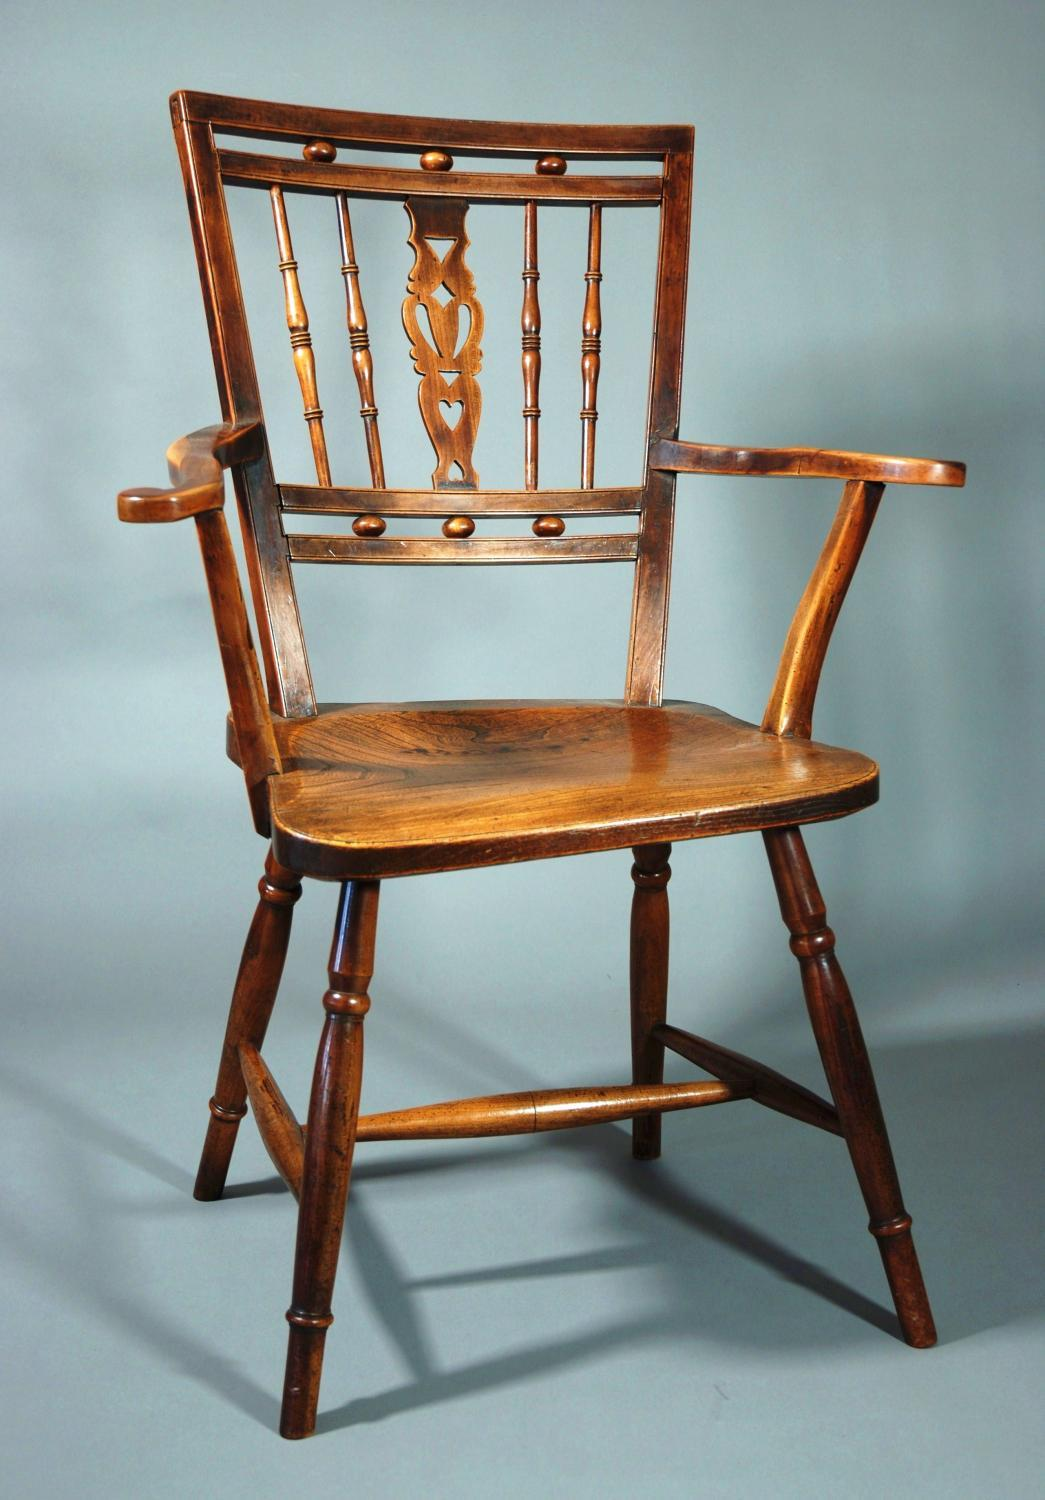 Early 19thc fruitwood Mendlesham chair